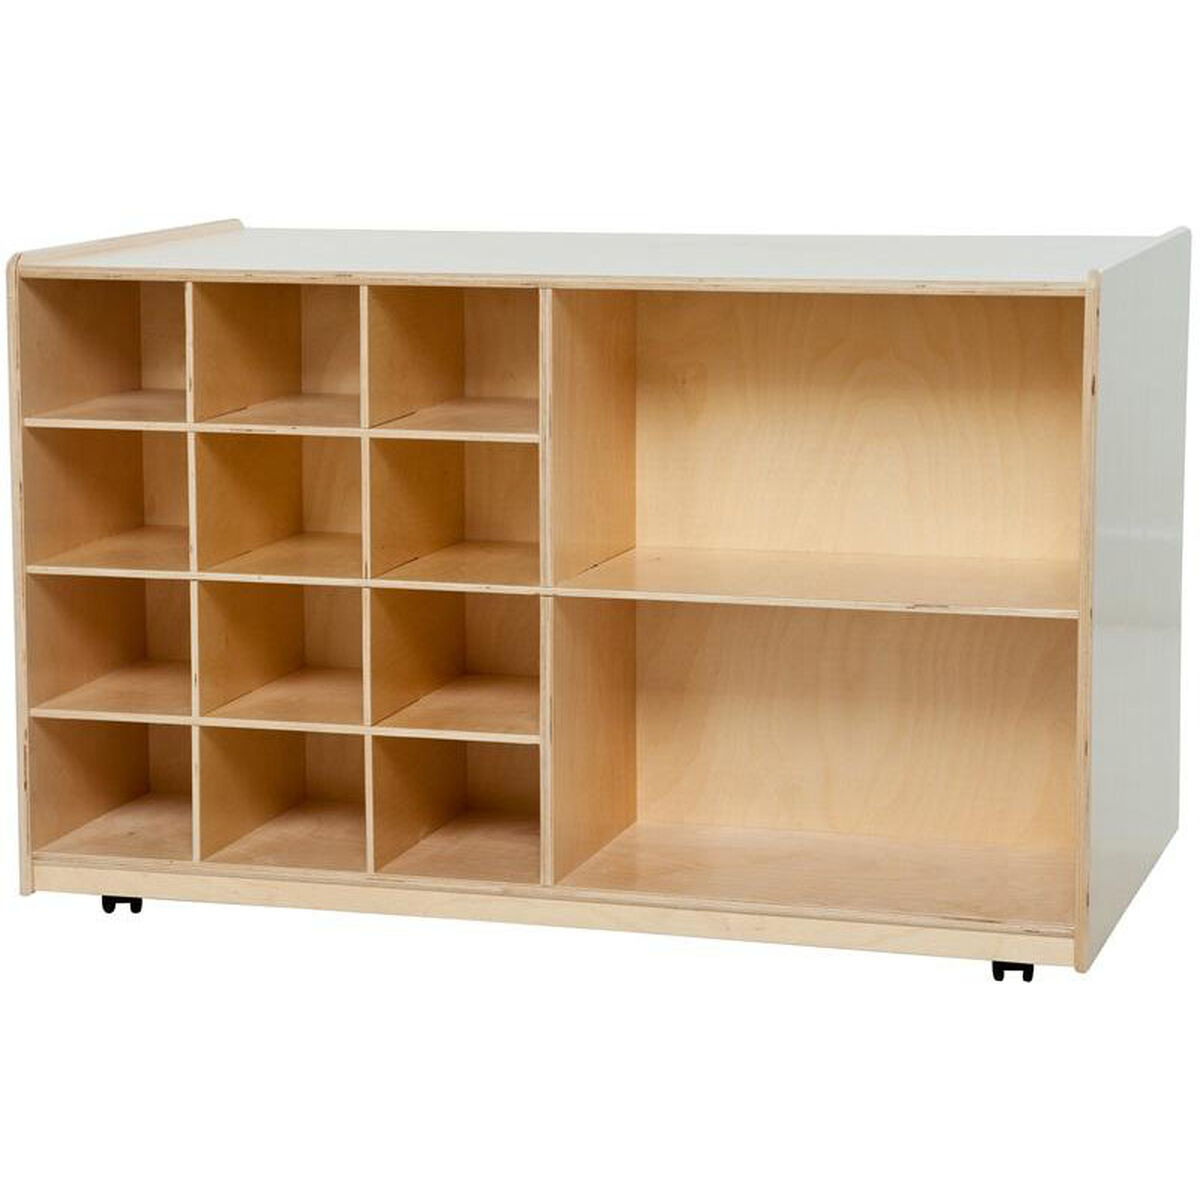 Wood Designs Wooden Double Sided Storage Unit With 5 Shelves And 12 Lime Green Plastic Trays